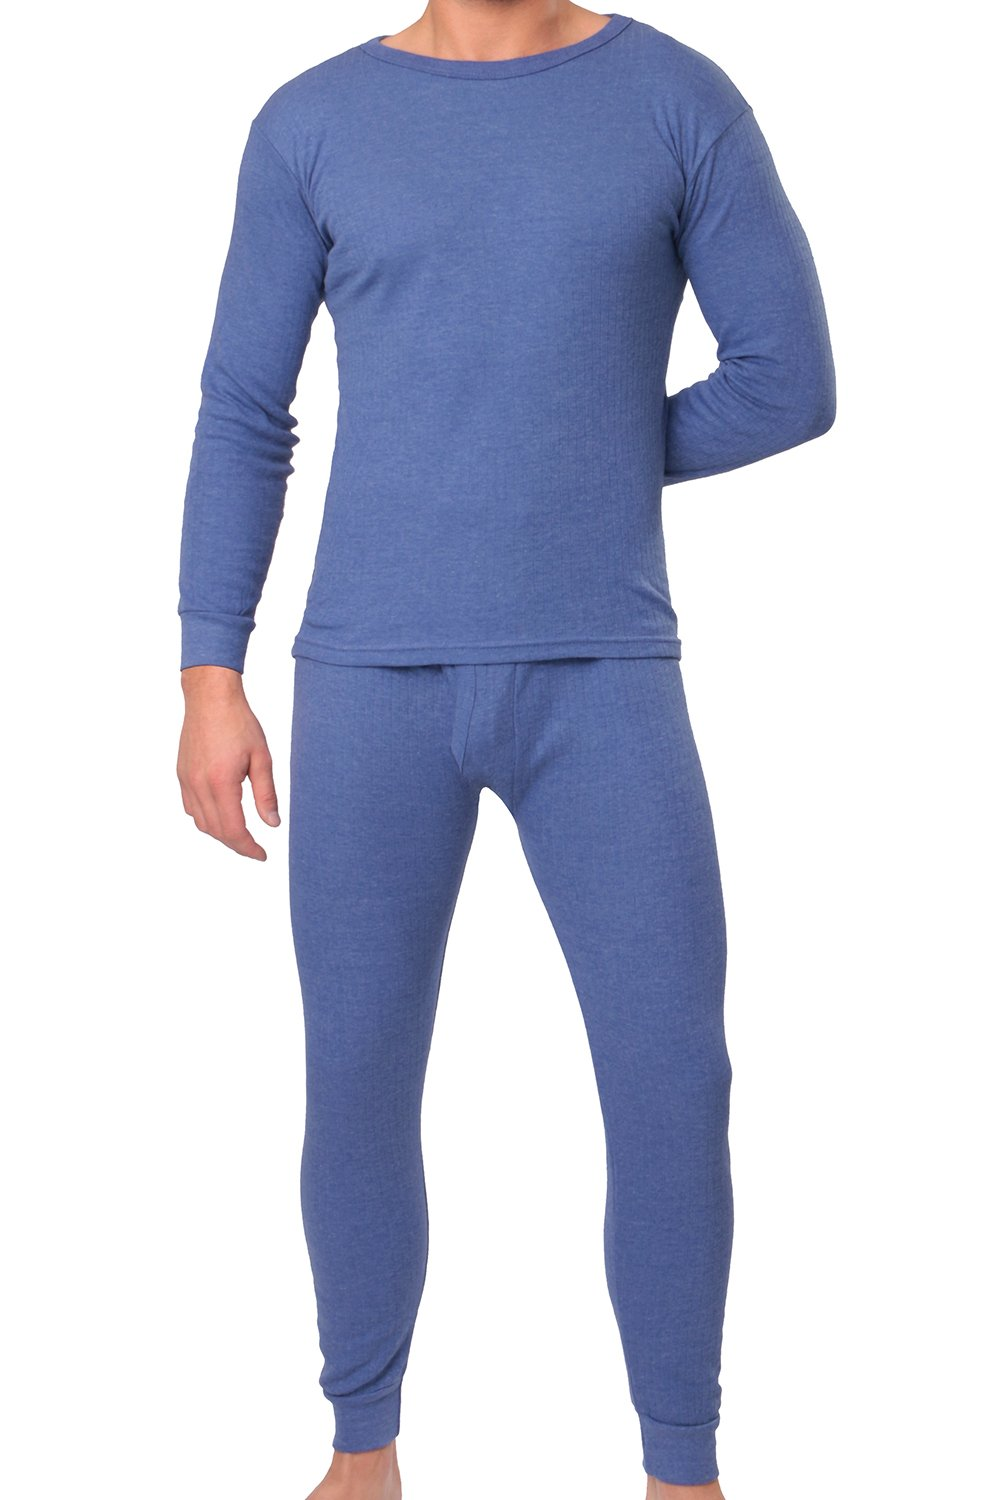 Celodoro MT® THERMO LIGHT Men's Thermal Underwear Set (Top & Bottoms) - Warm, Soft & Breathable Quality Fibres - Choice of Sizes M-3XL